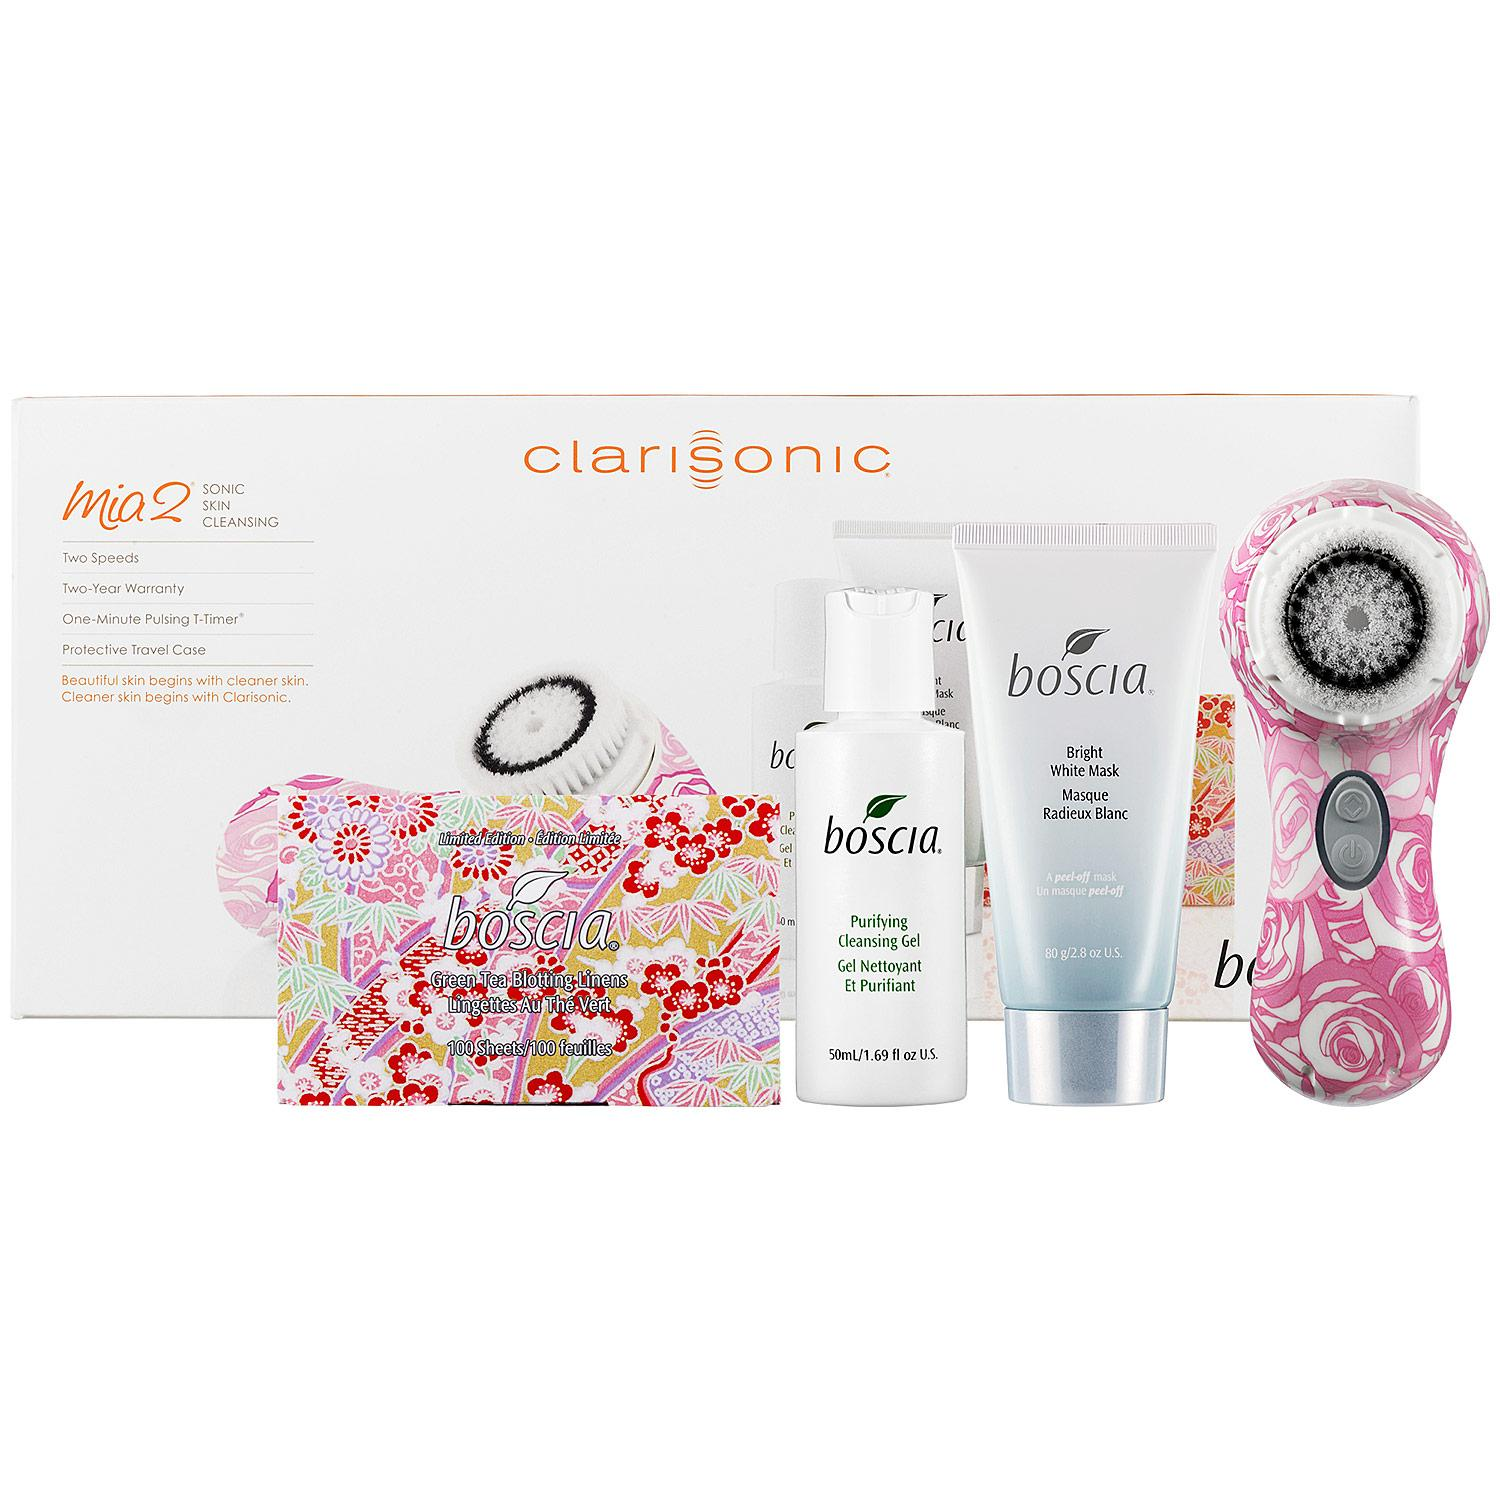 Mia2™ Sonic Cleansing Brush Brightening Blossom with Boscia